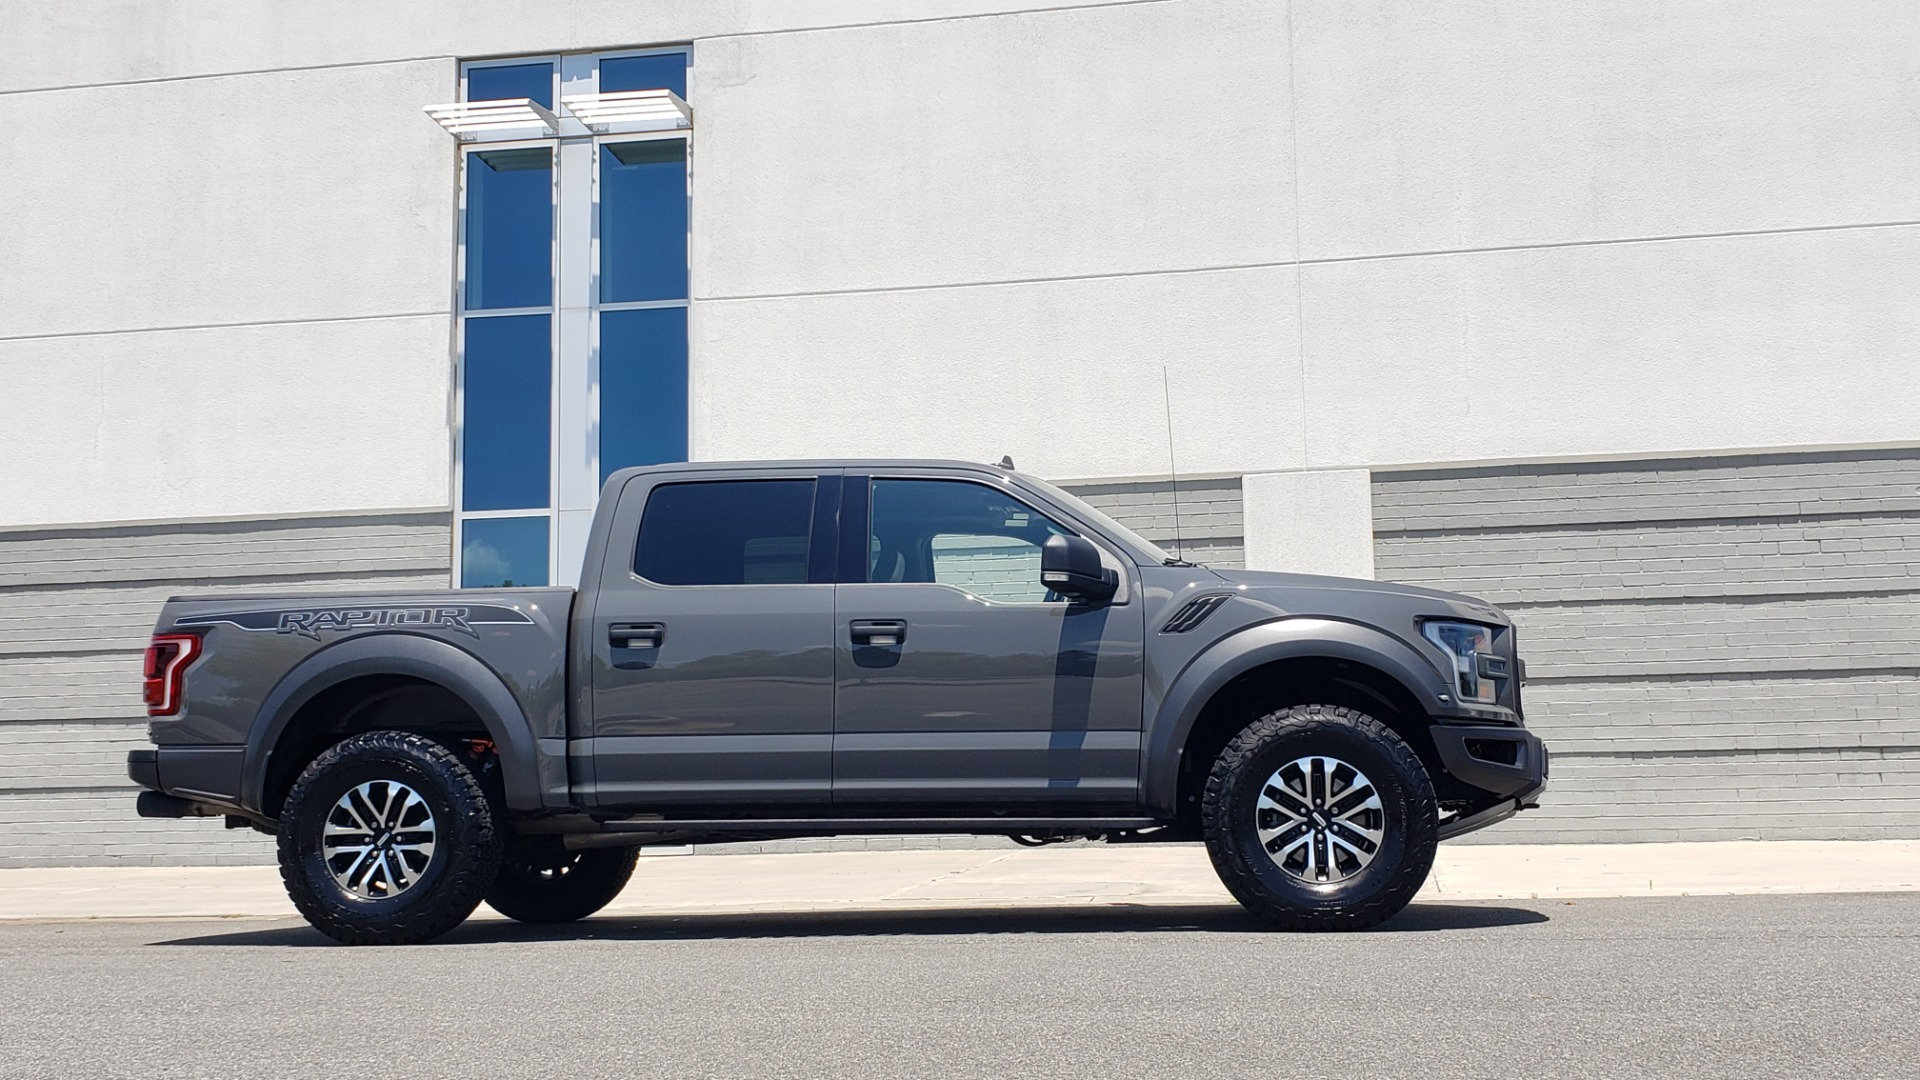 Used 2020 Ford F-150 RAPTOR 4X4 SUPERCREW / 3.5L ECOBOOST / 10-SPD AUTO / SUNROOF / REARVIEW for sale $82,500 at Formula Imports in Charlotte NC 28227 9